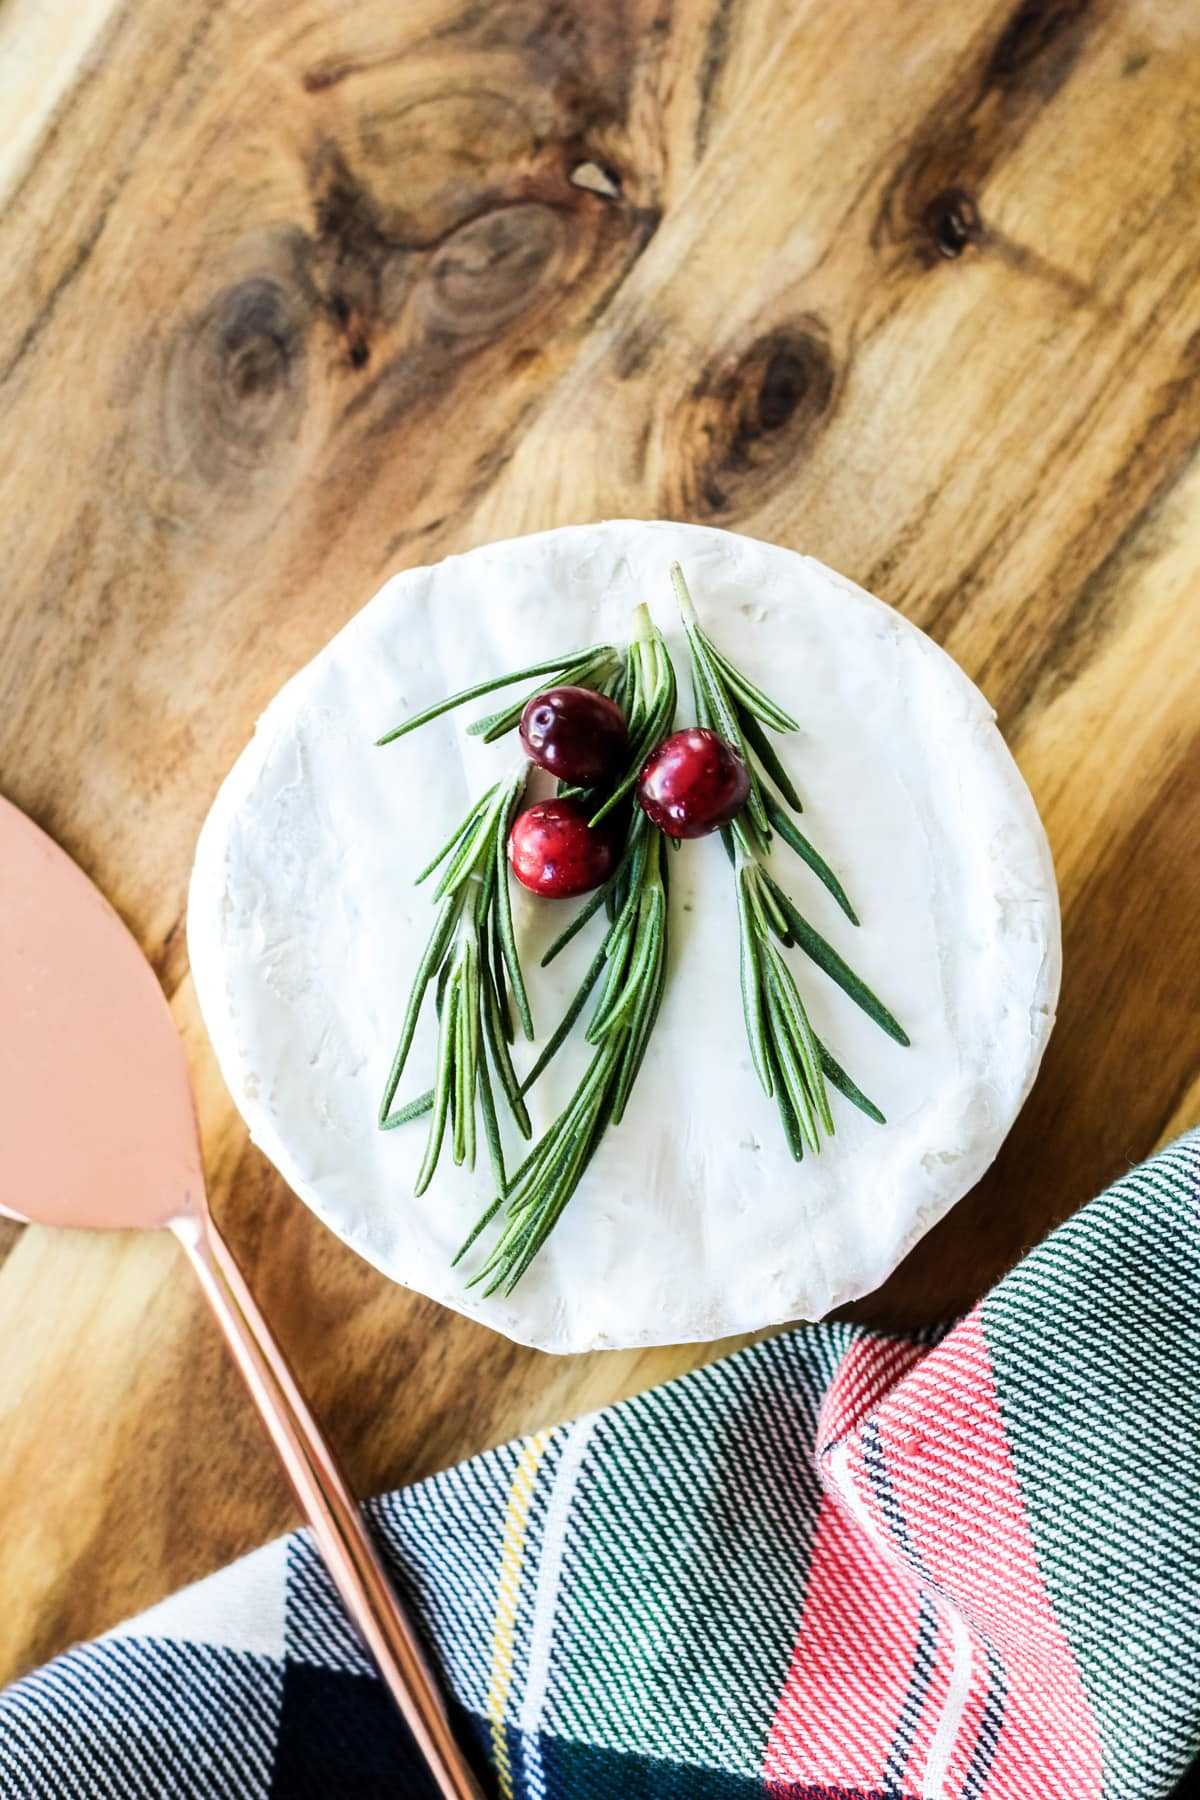 A small wheel of Brie topped with fresh rosemary and cranberries